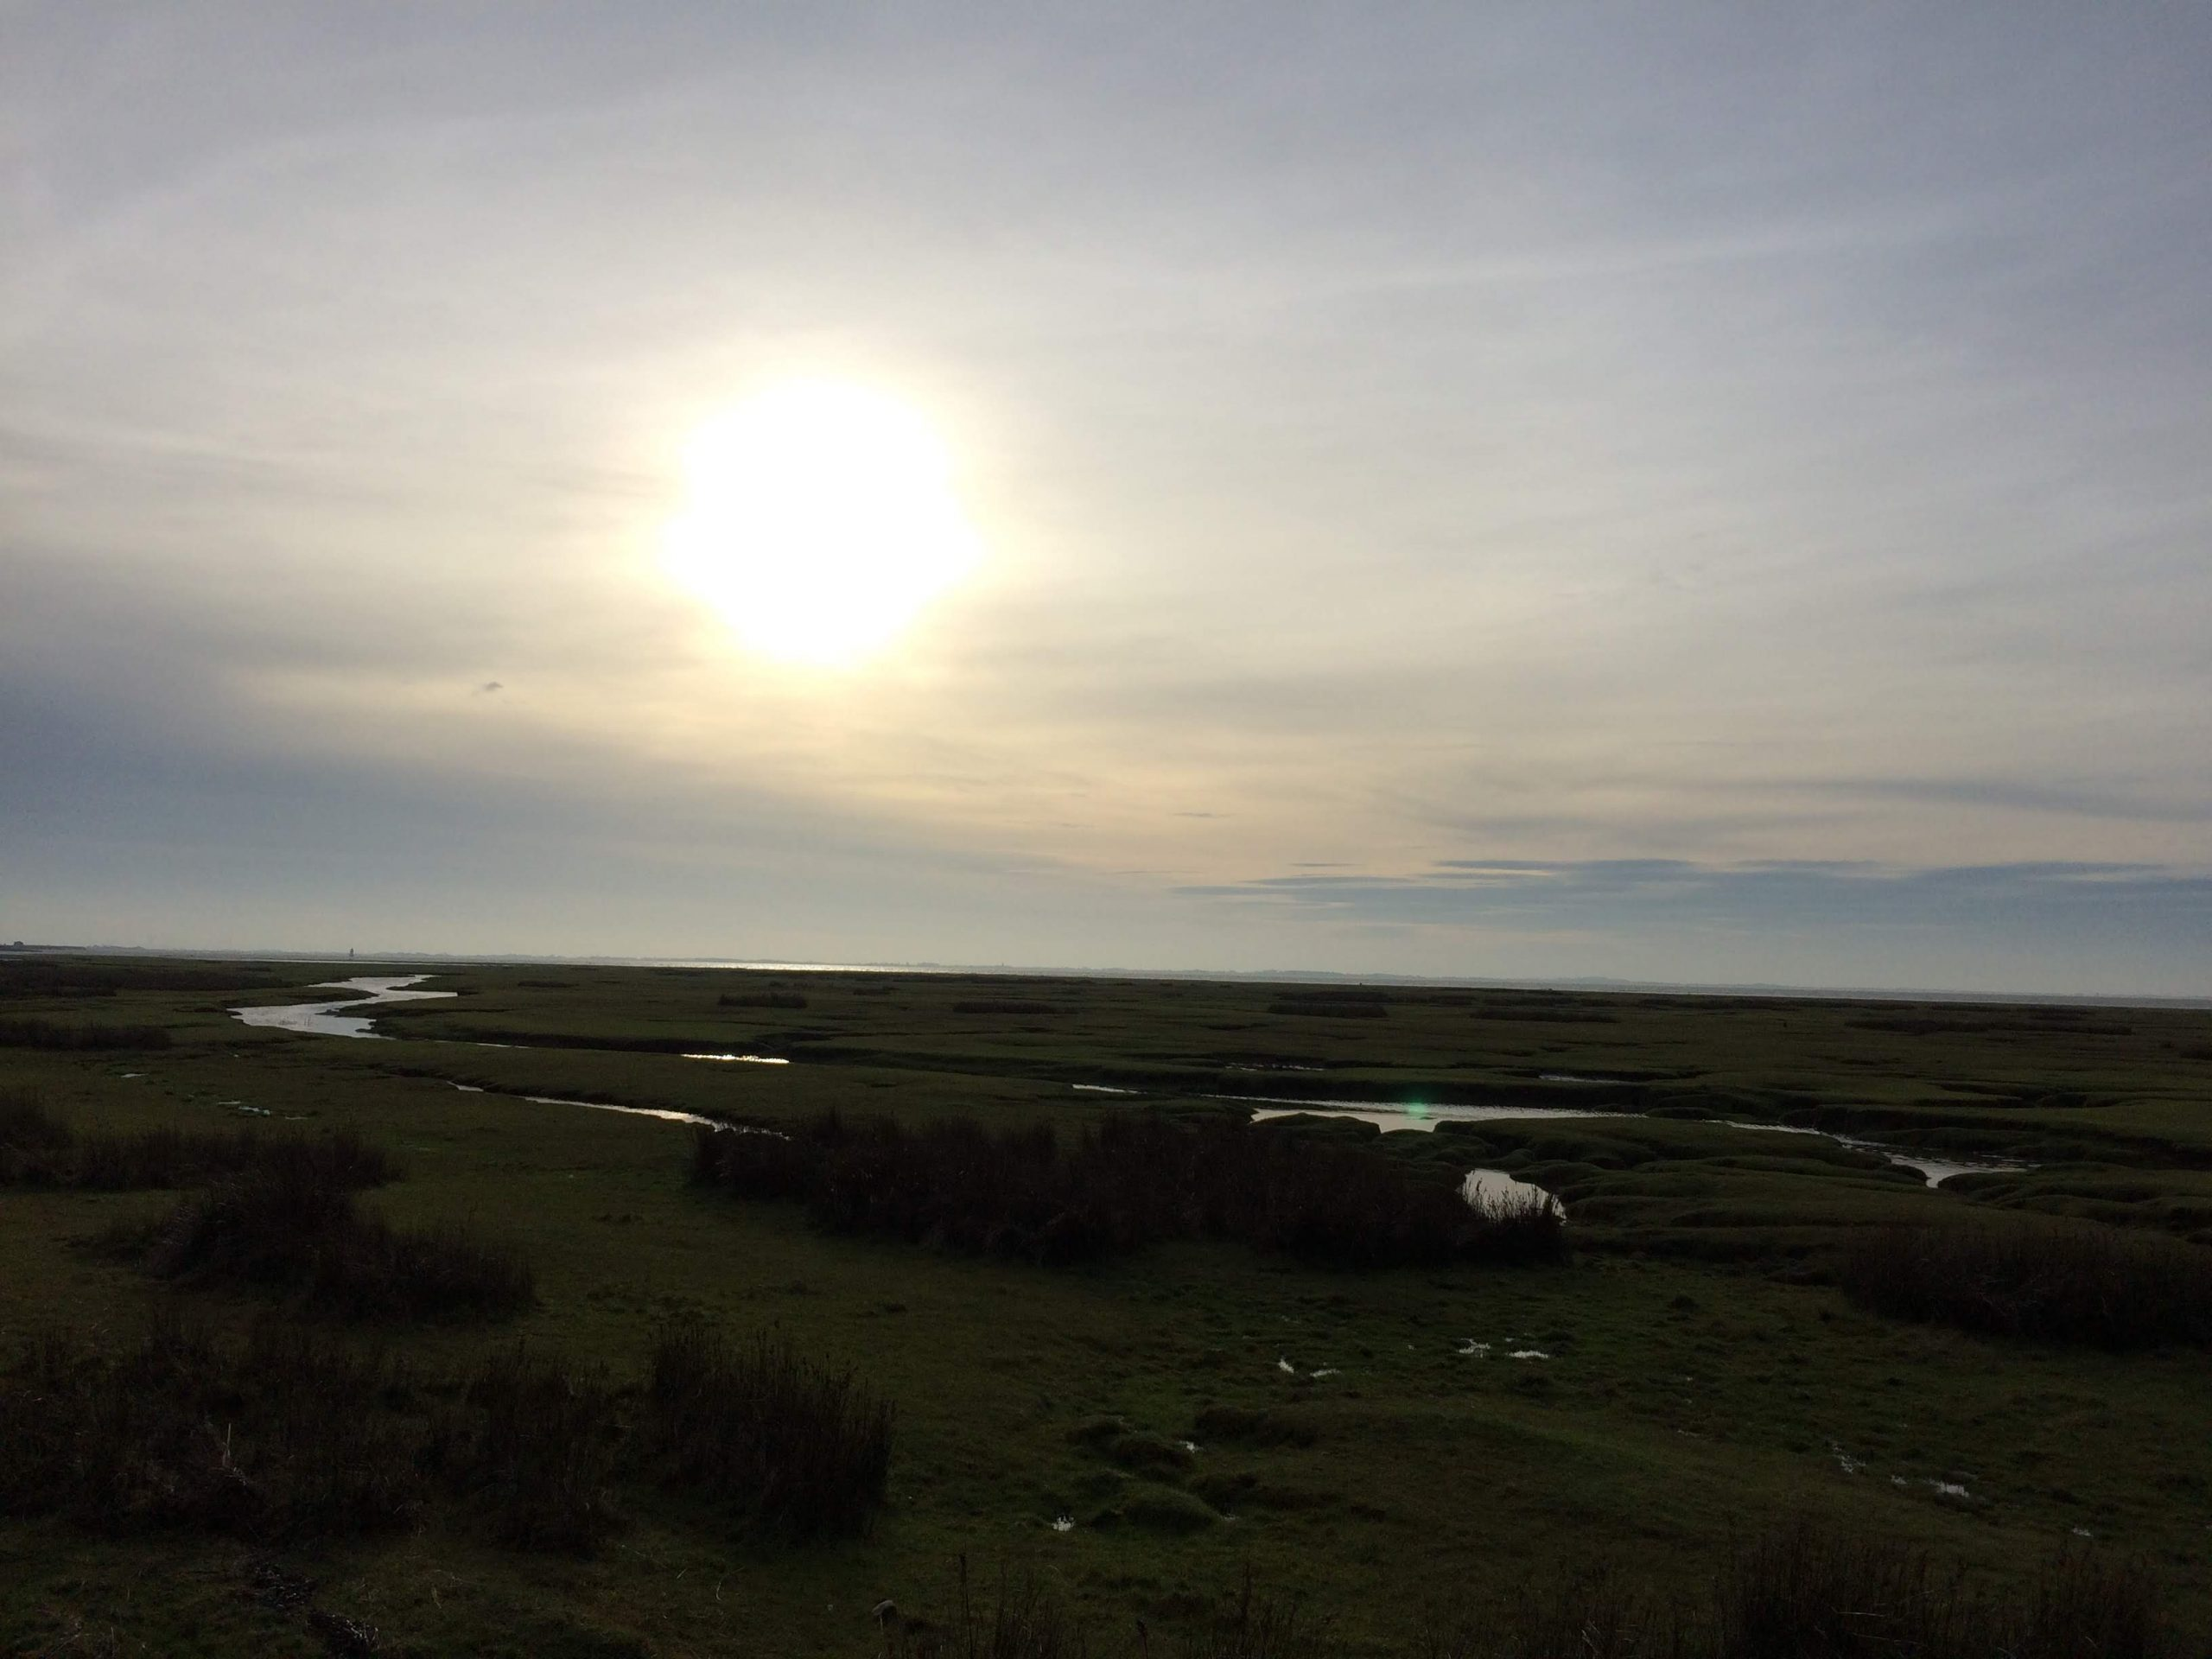 The sub shining through clouds over a wetlands marsh, Sunderland Point, Lancashire